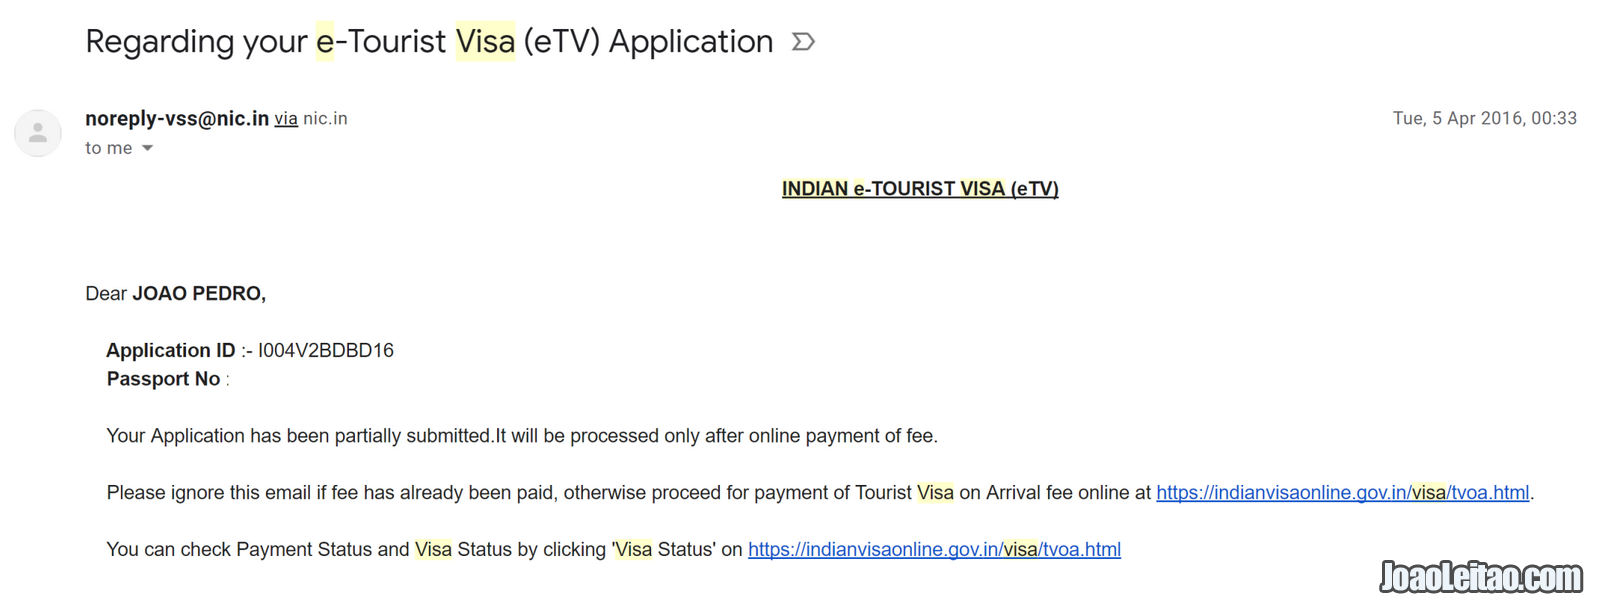 CONFIRMATION OF INDIA VISA APPLICATION, BUT MISSING PAYMENT